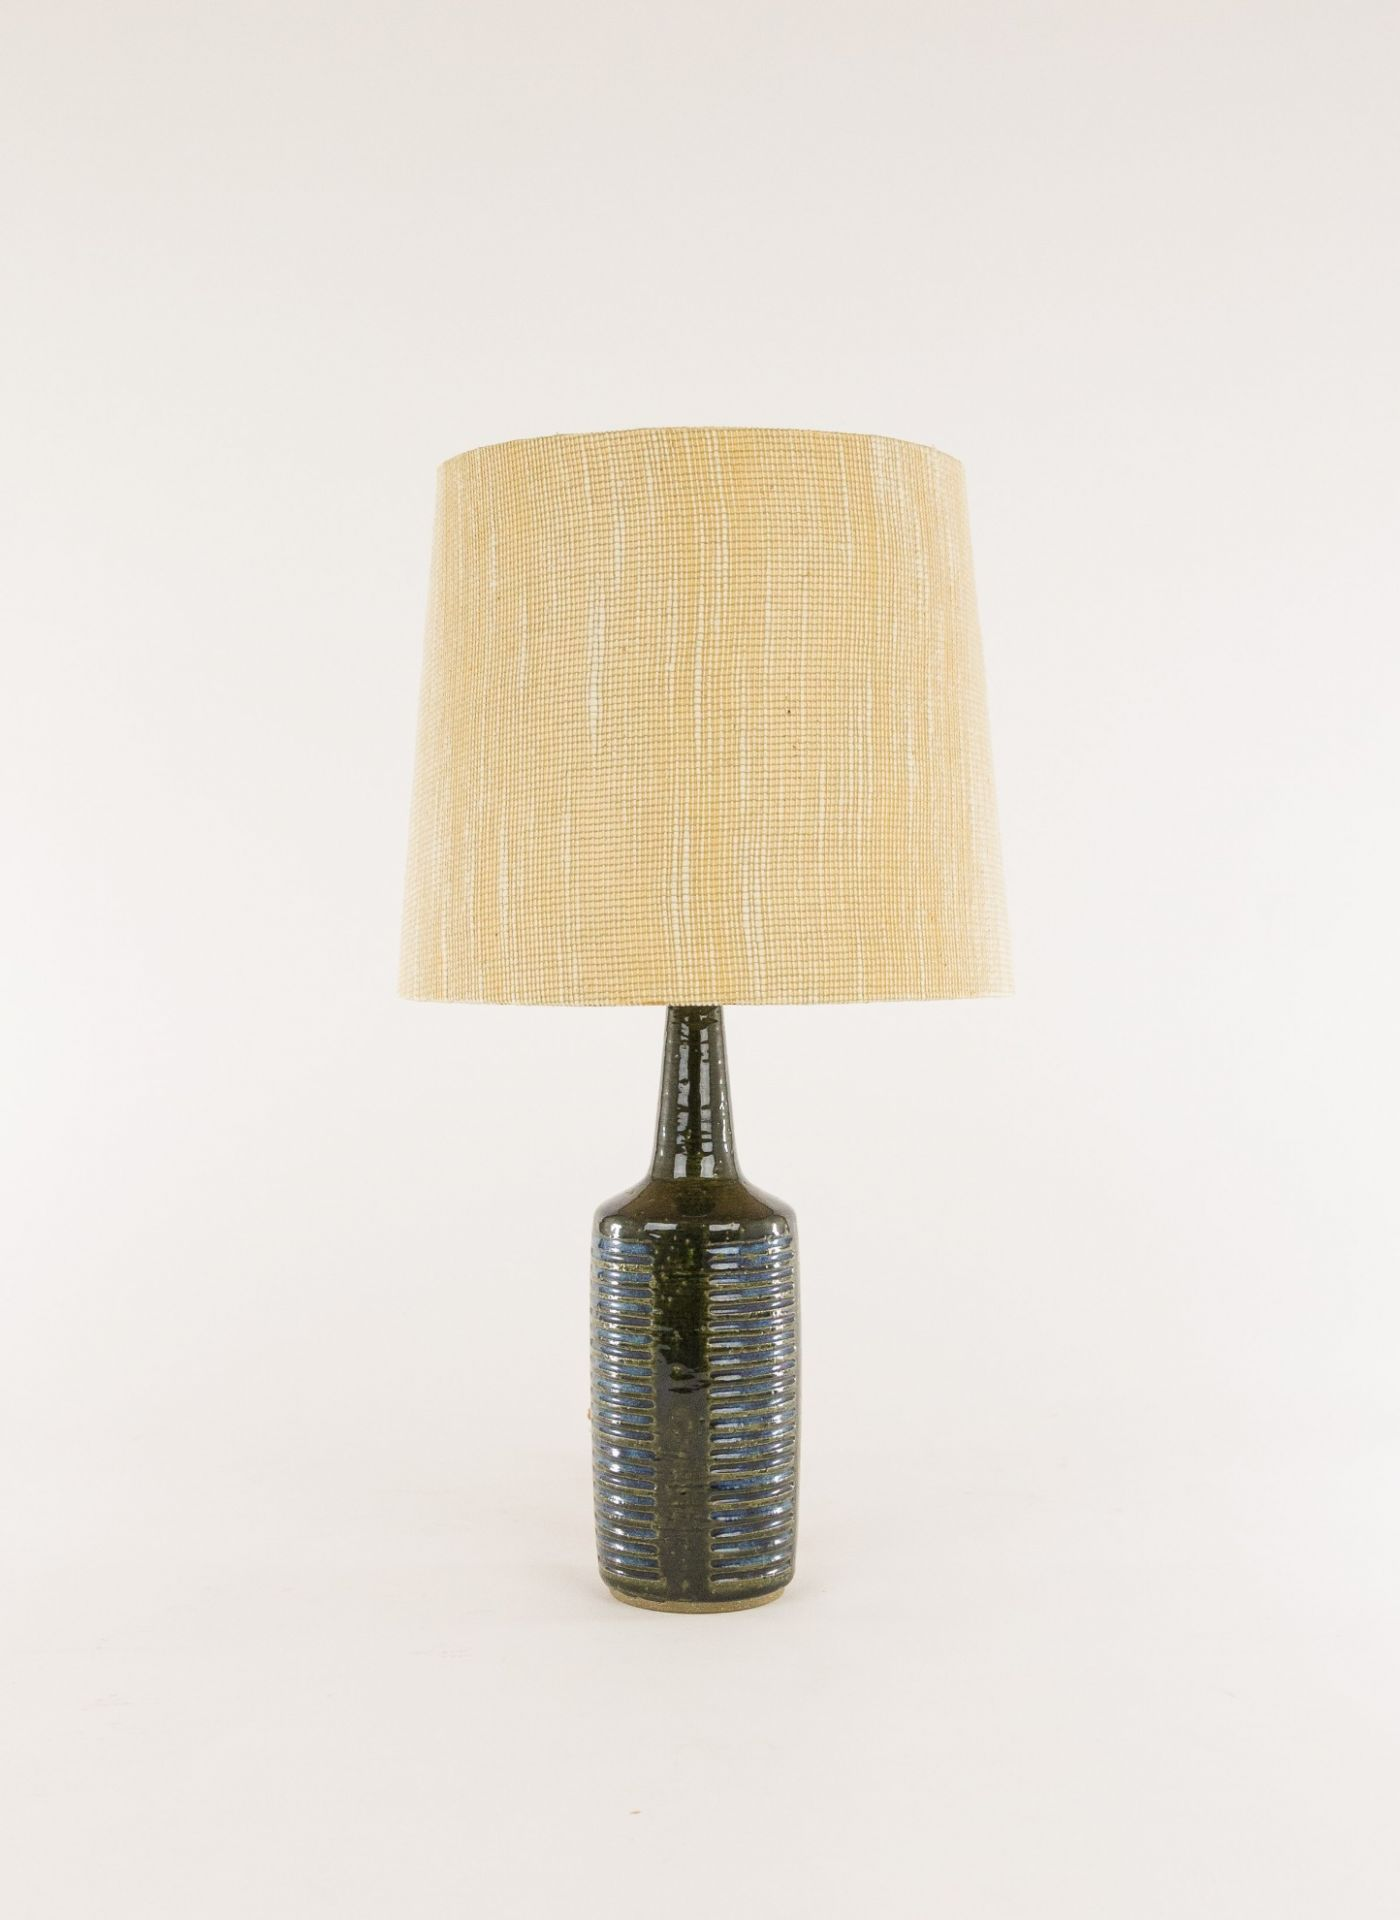 Palshus table lamp model DL/30 by Annelise and Per Linnemann-Schmidt, 1960s